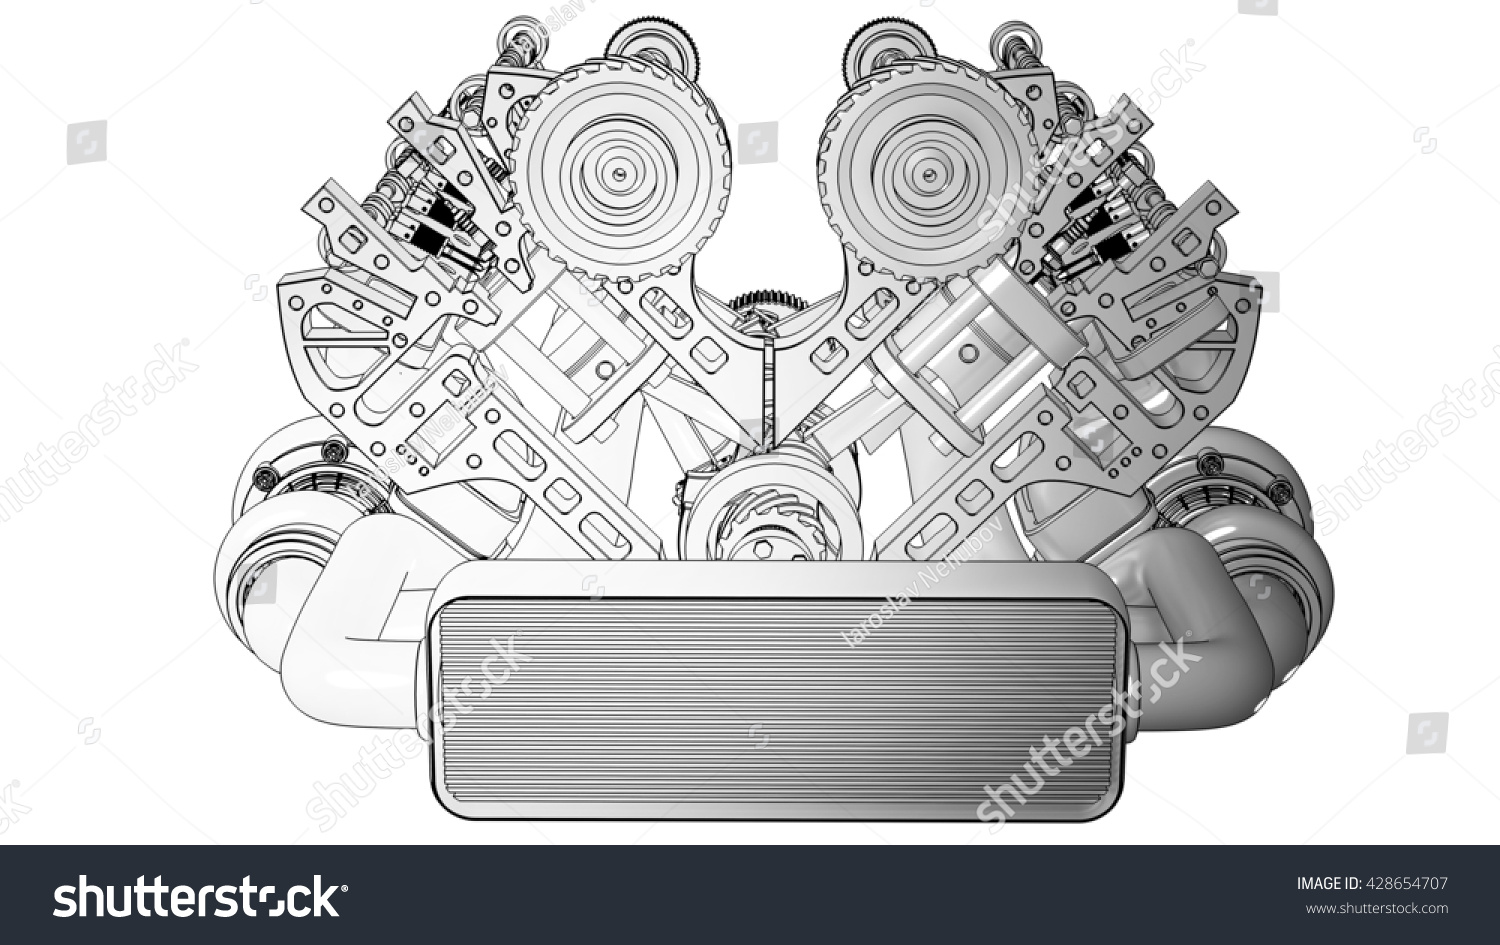 Beautiful Simple Engine Diagram Gallery - The Best Electrical ...